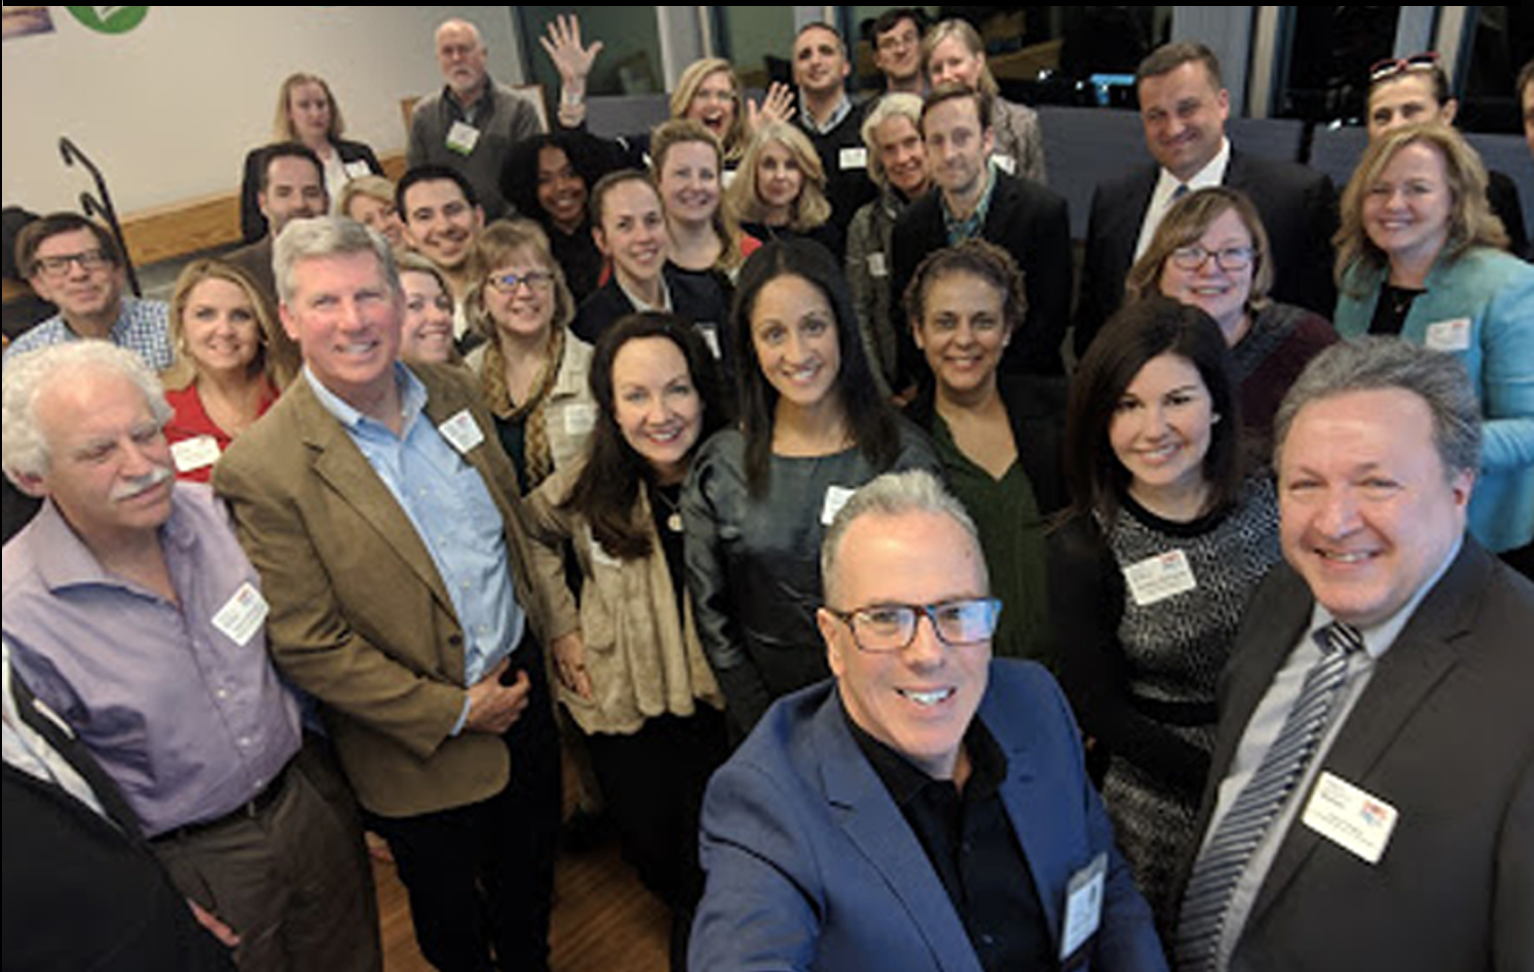 "- This ""group selfie"" was taken at the conclusion of a panel discussion that Jim Panagas (front row, right) moderated for AMA Boston and PRSA Boston. The event took place in March 2019 and focused on the changing relationship between CMO's and digital marketing agencies."